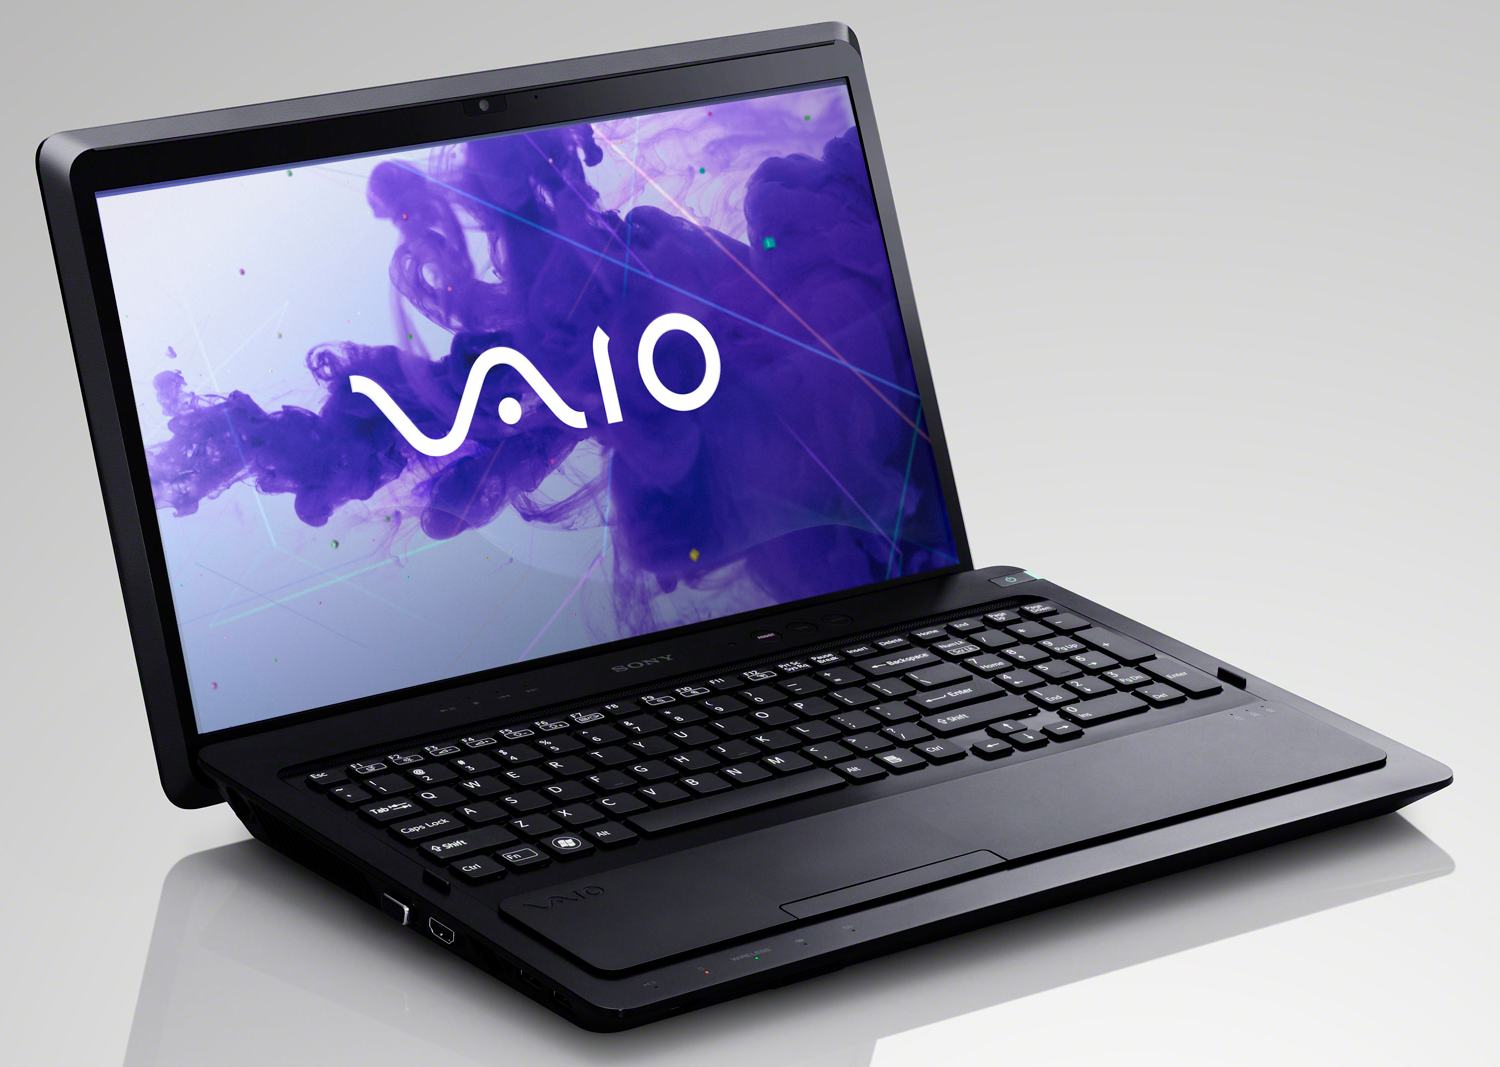 SONY VAIO VPCF23JFX RICOH PCIE MEMORY STICK WINDOWS 7 DRIVERS DOWNLOAD (2019)